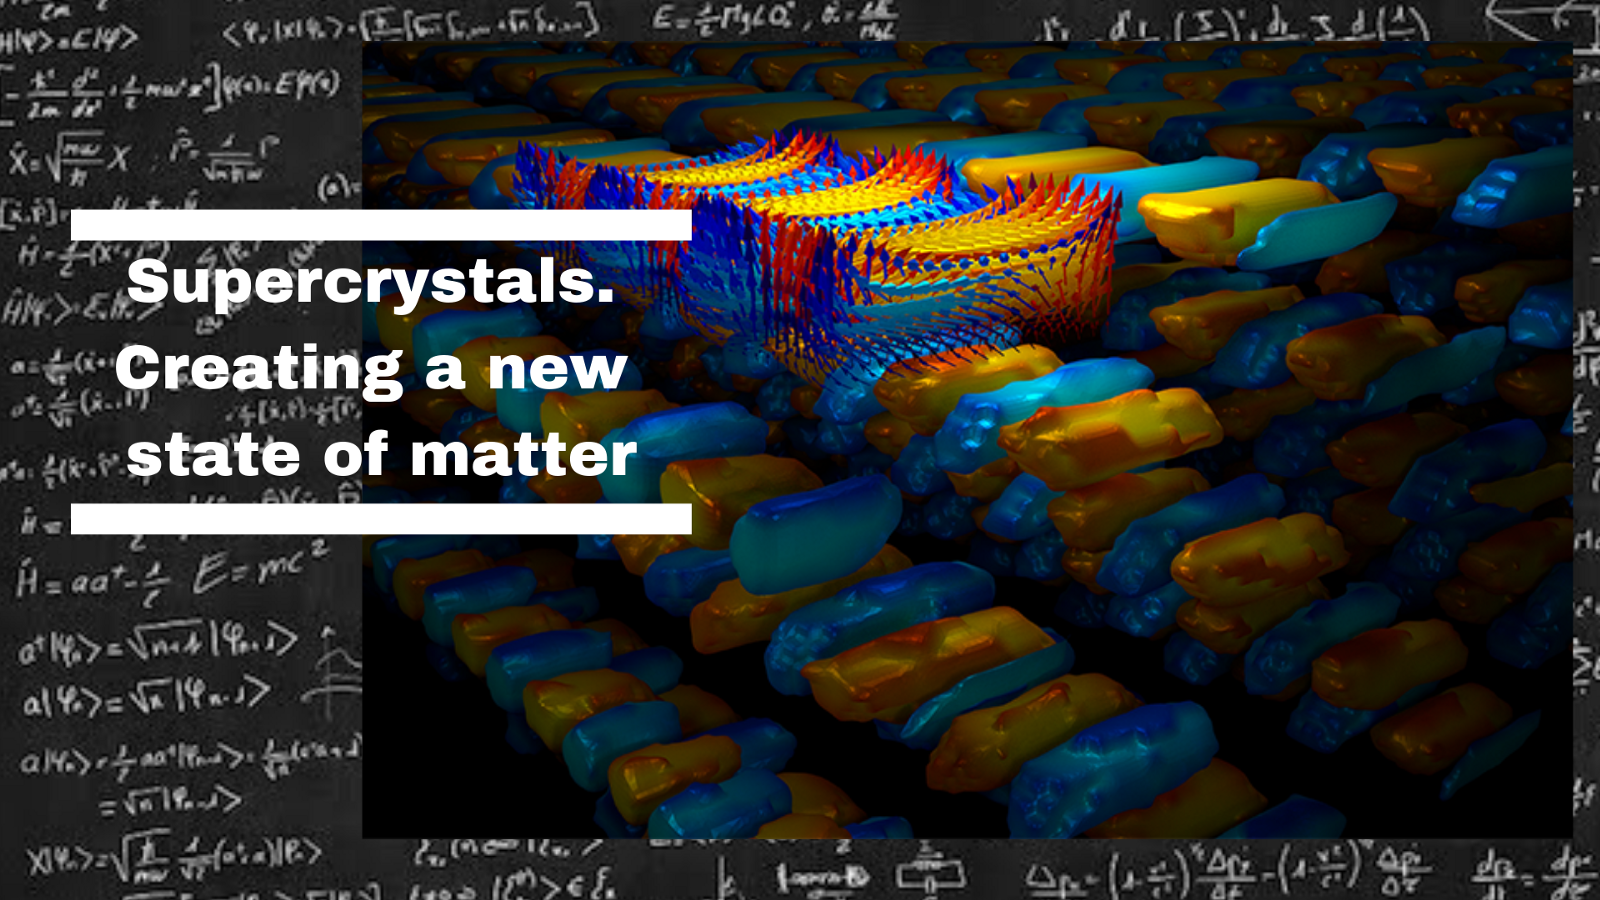 A New And Stable At Room Temperature State Of Matter Has Been Created!